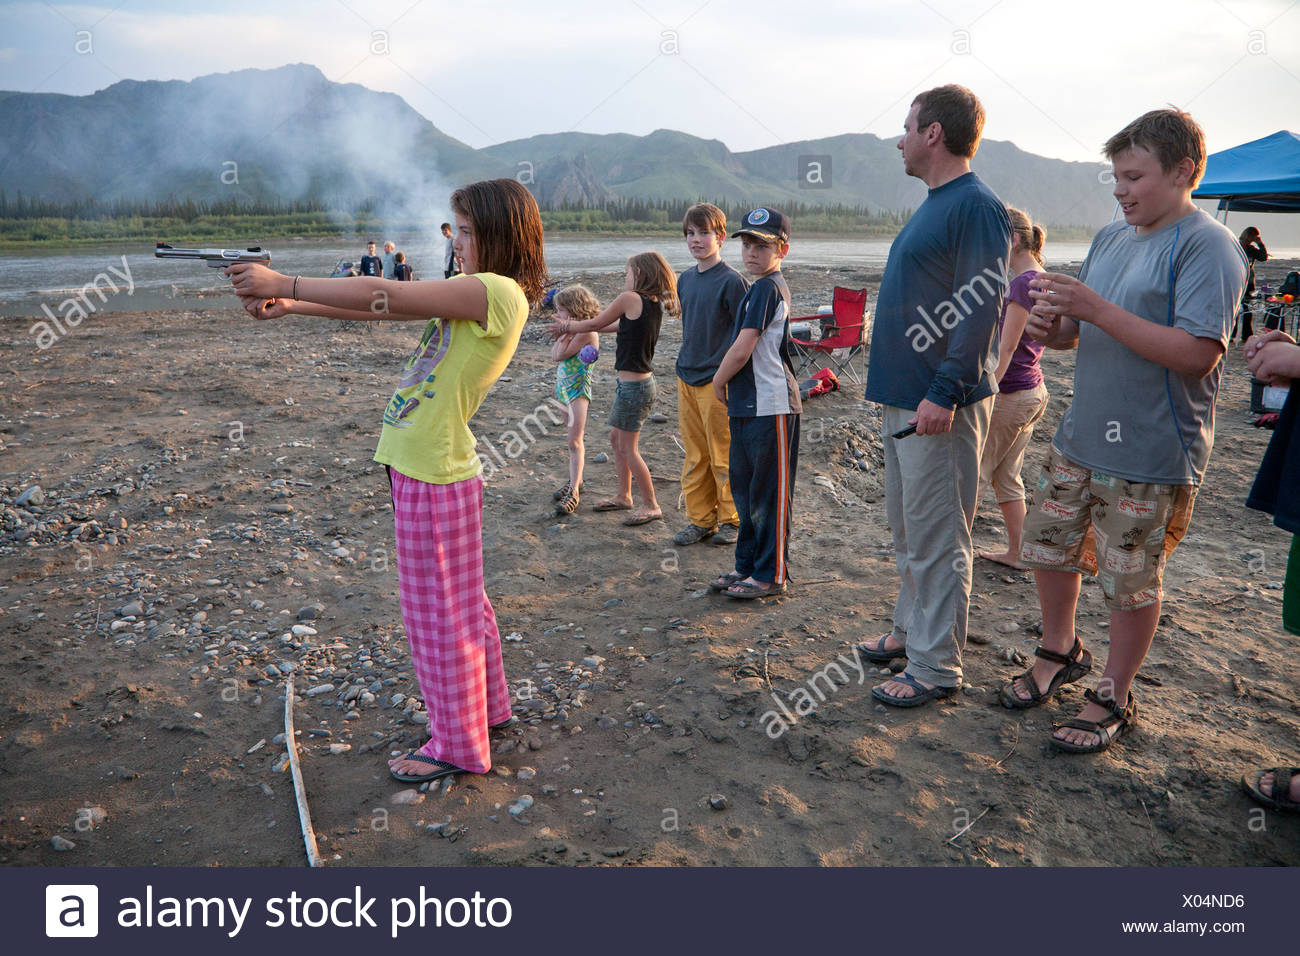 Young girl shoots a pistol in her pajamas and flip-flops at the edge of the Yukon River, Yukon-Charley Rivers National Preserve - Stock Image